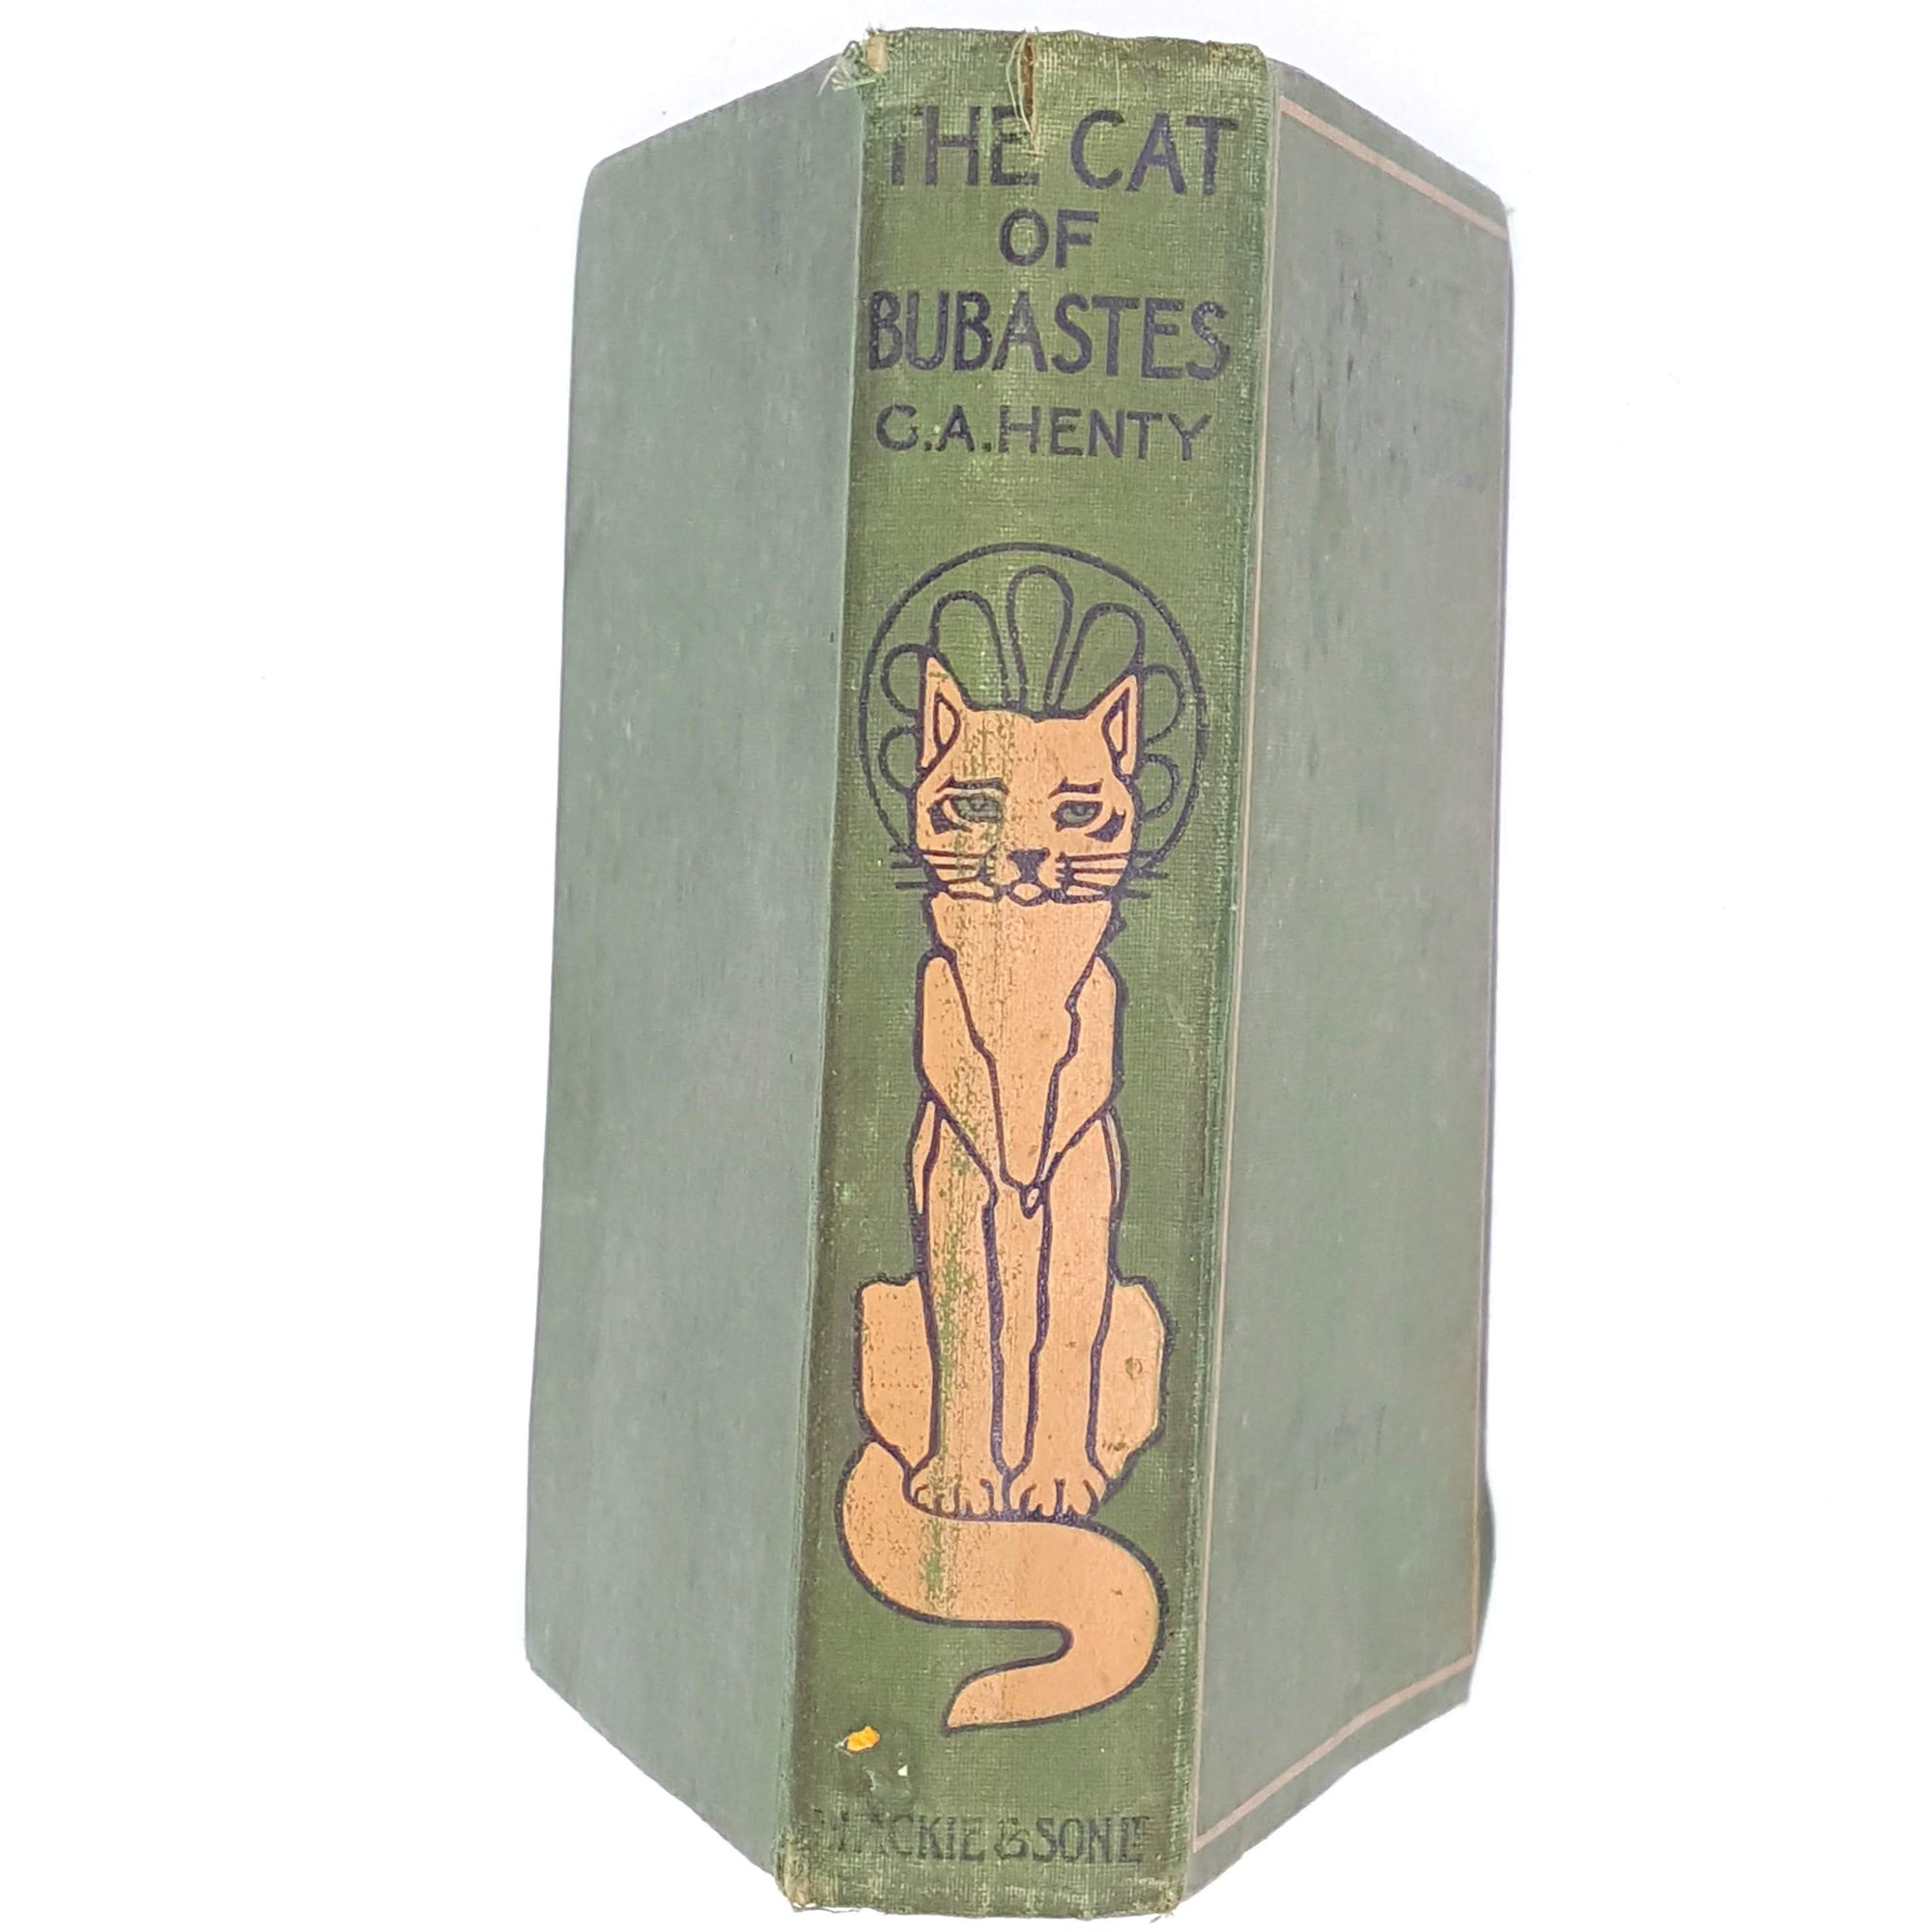 The Cat of Bubastes by G. A. Henty 1940s